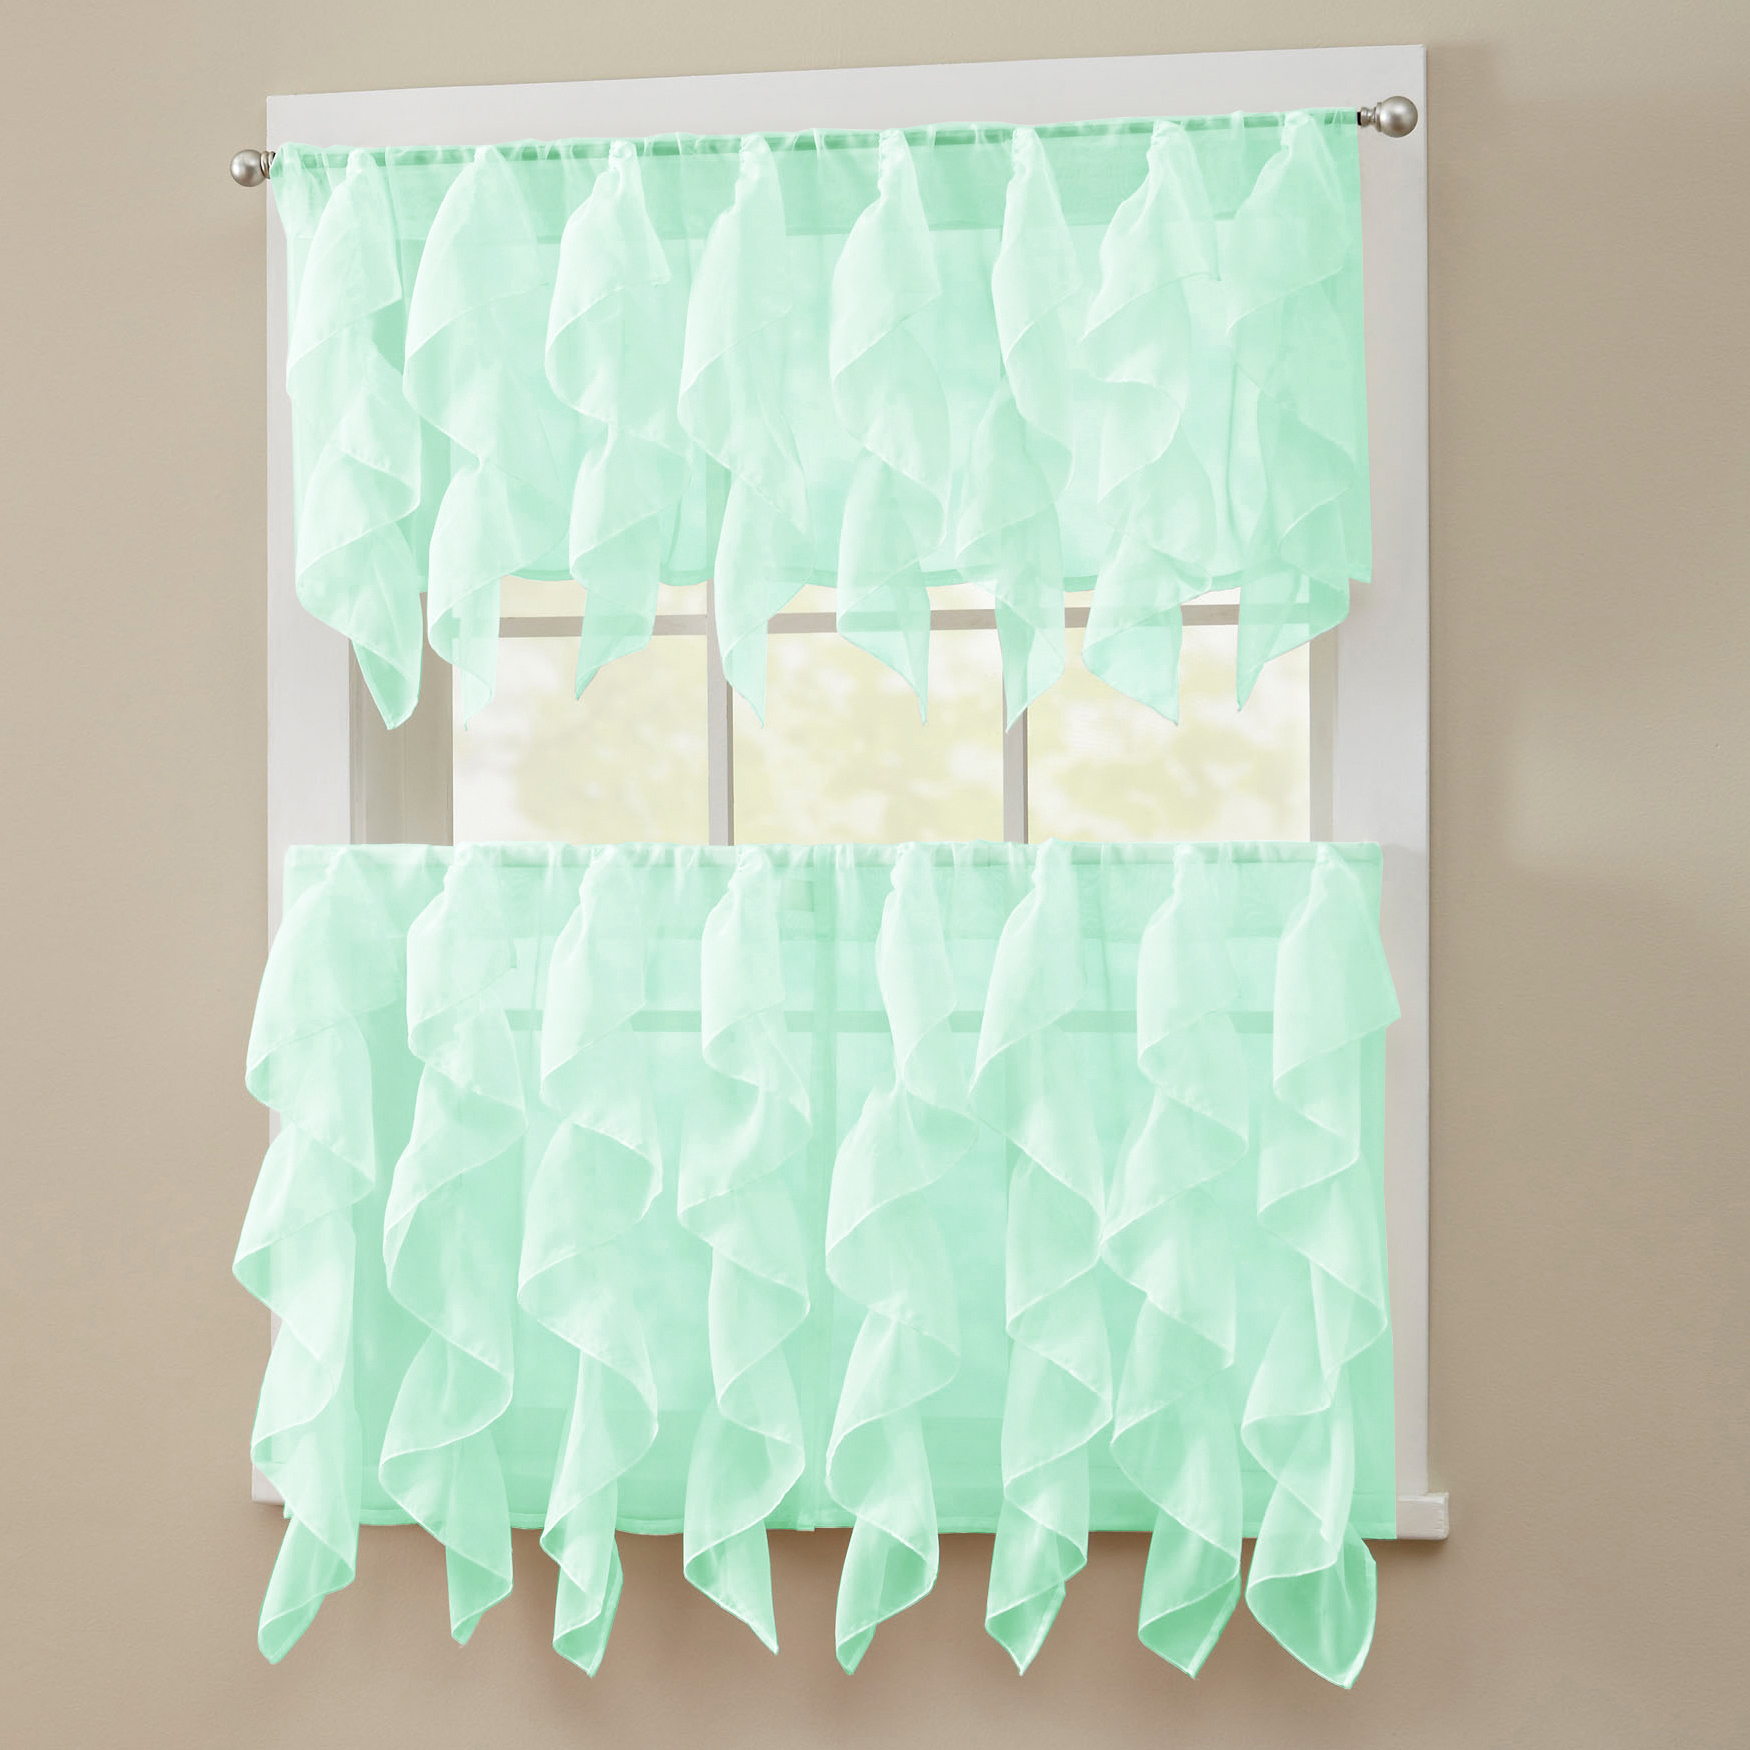 Well Known Details About Sheer Voile Vertical Ruffle Window Kitchen Curtain Tiers Or Valance Mint Within Maize Vertical Ruffled Waterfall Valance And Curtain Tiers (View 9 of 20)